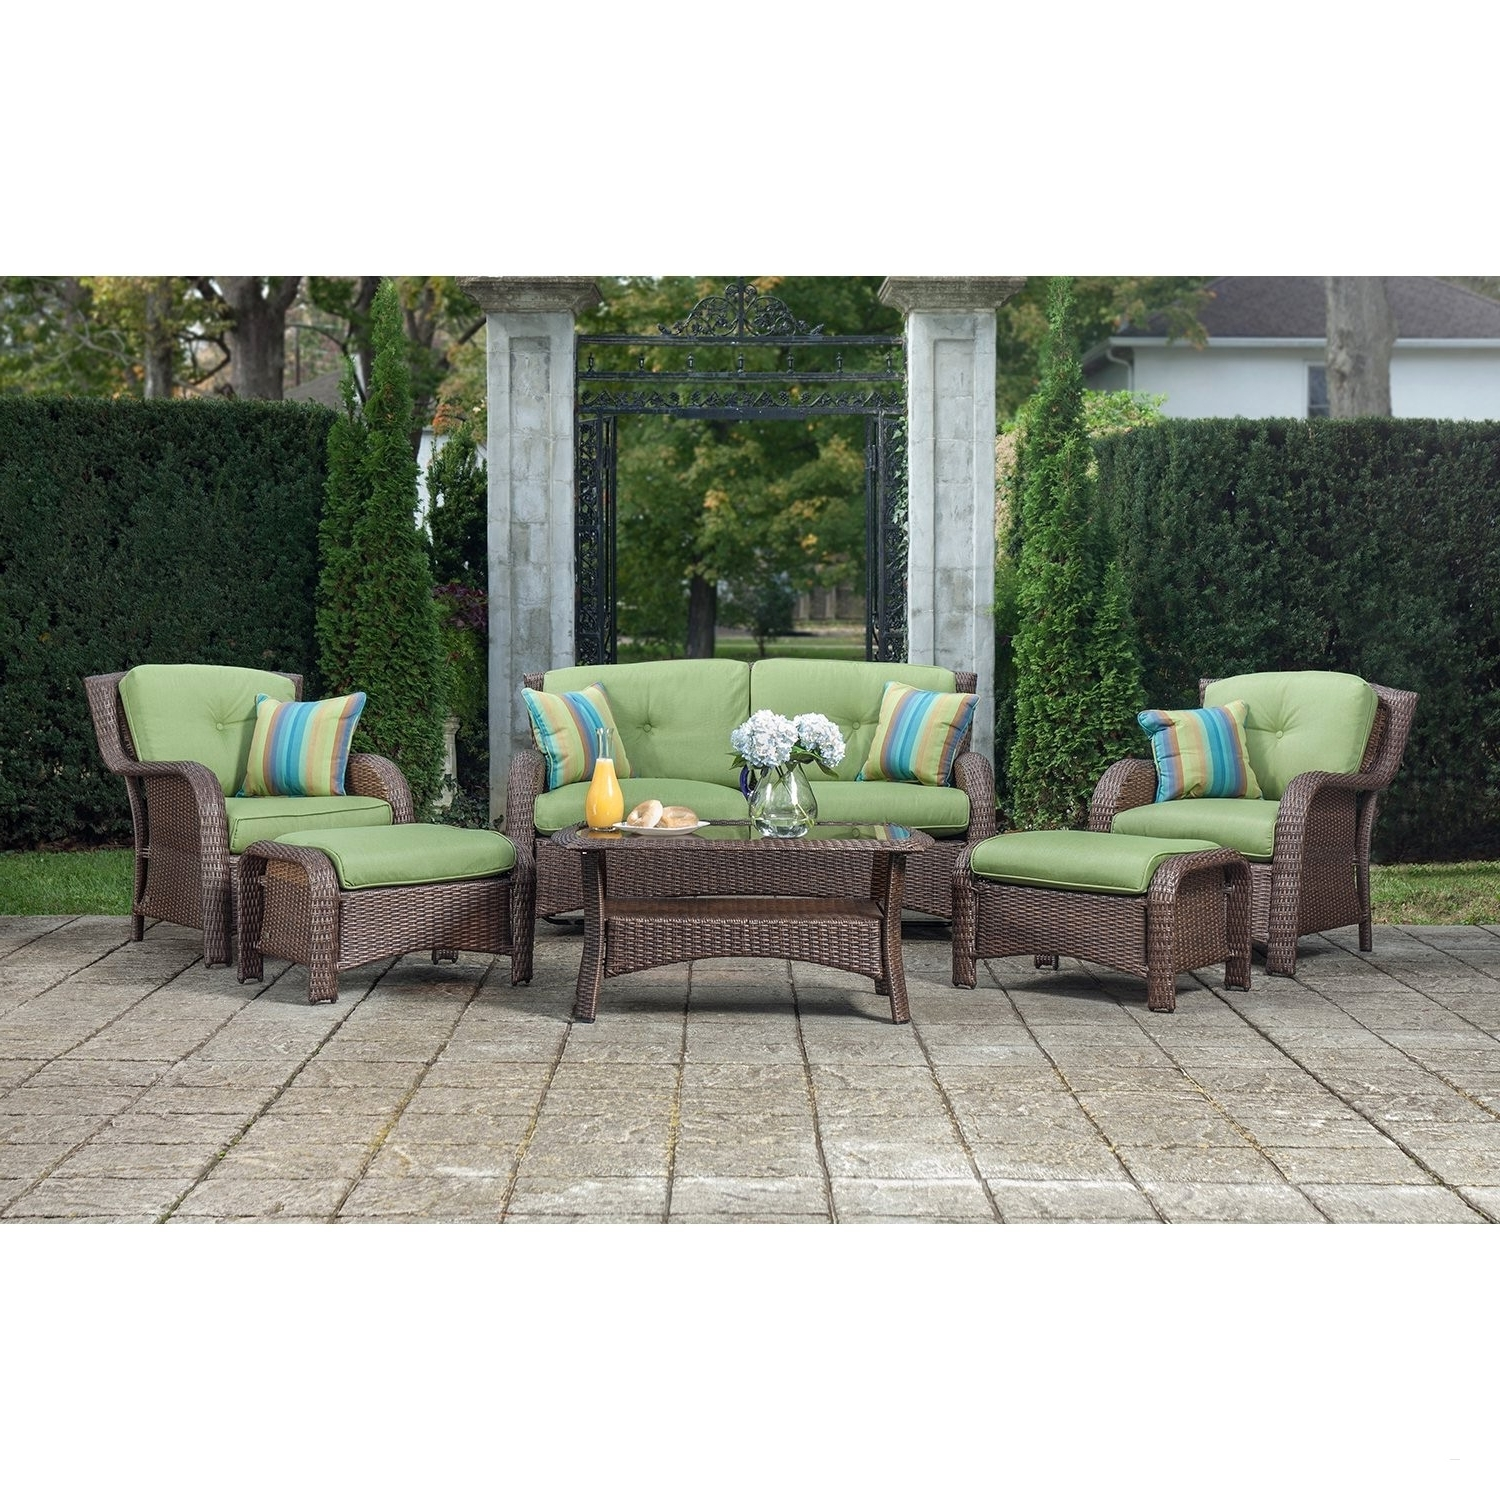 Lazy Boy Patio Conversation Sets Intended For Most Current Lazy Boy Outdoor Furniture Unique 72 Unique Inexpensive Wicker (View 10 of 20)